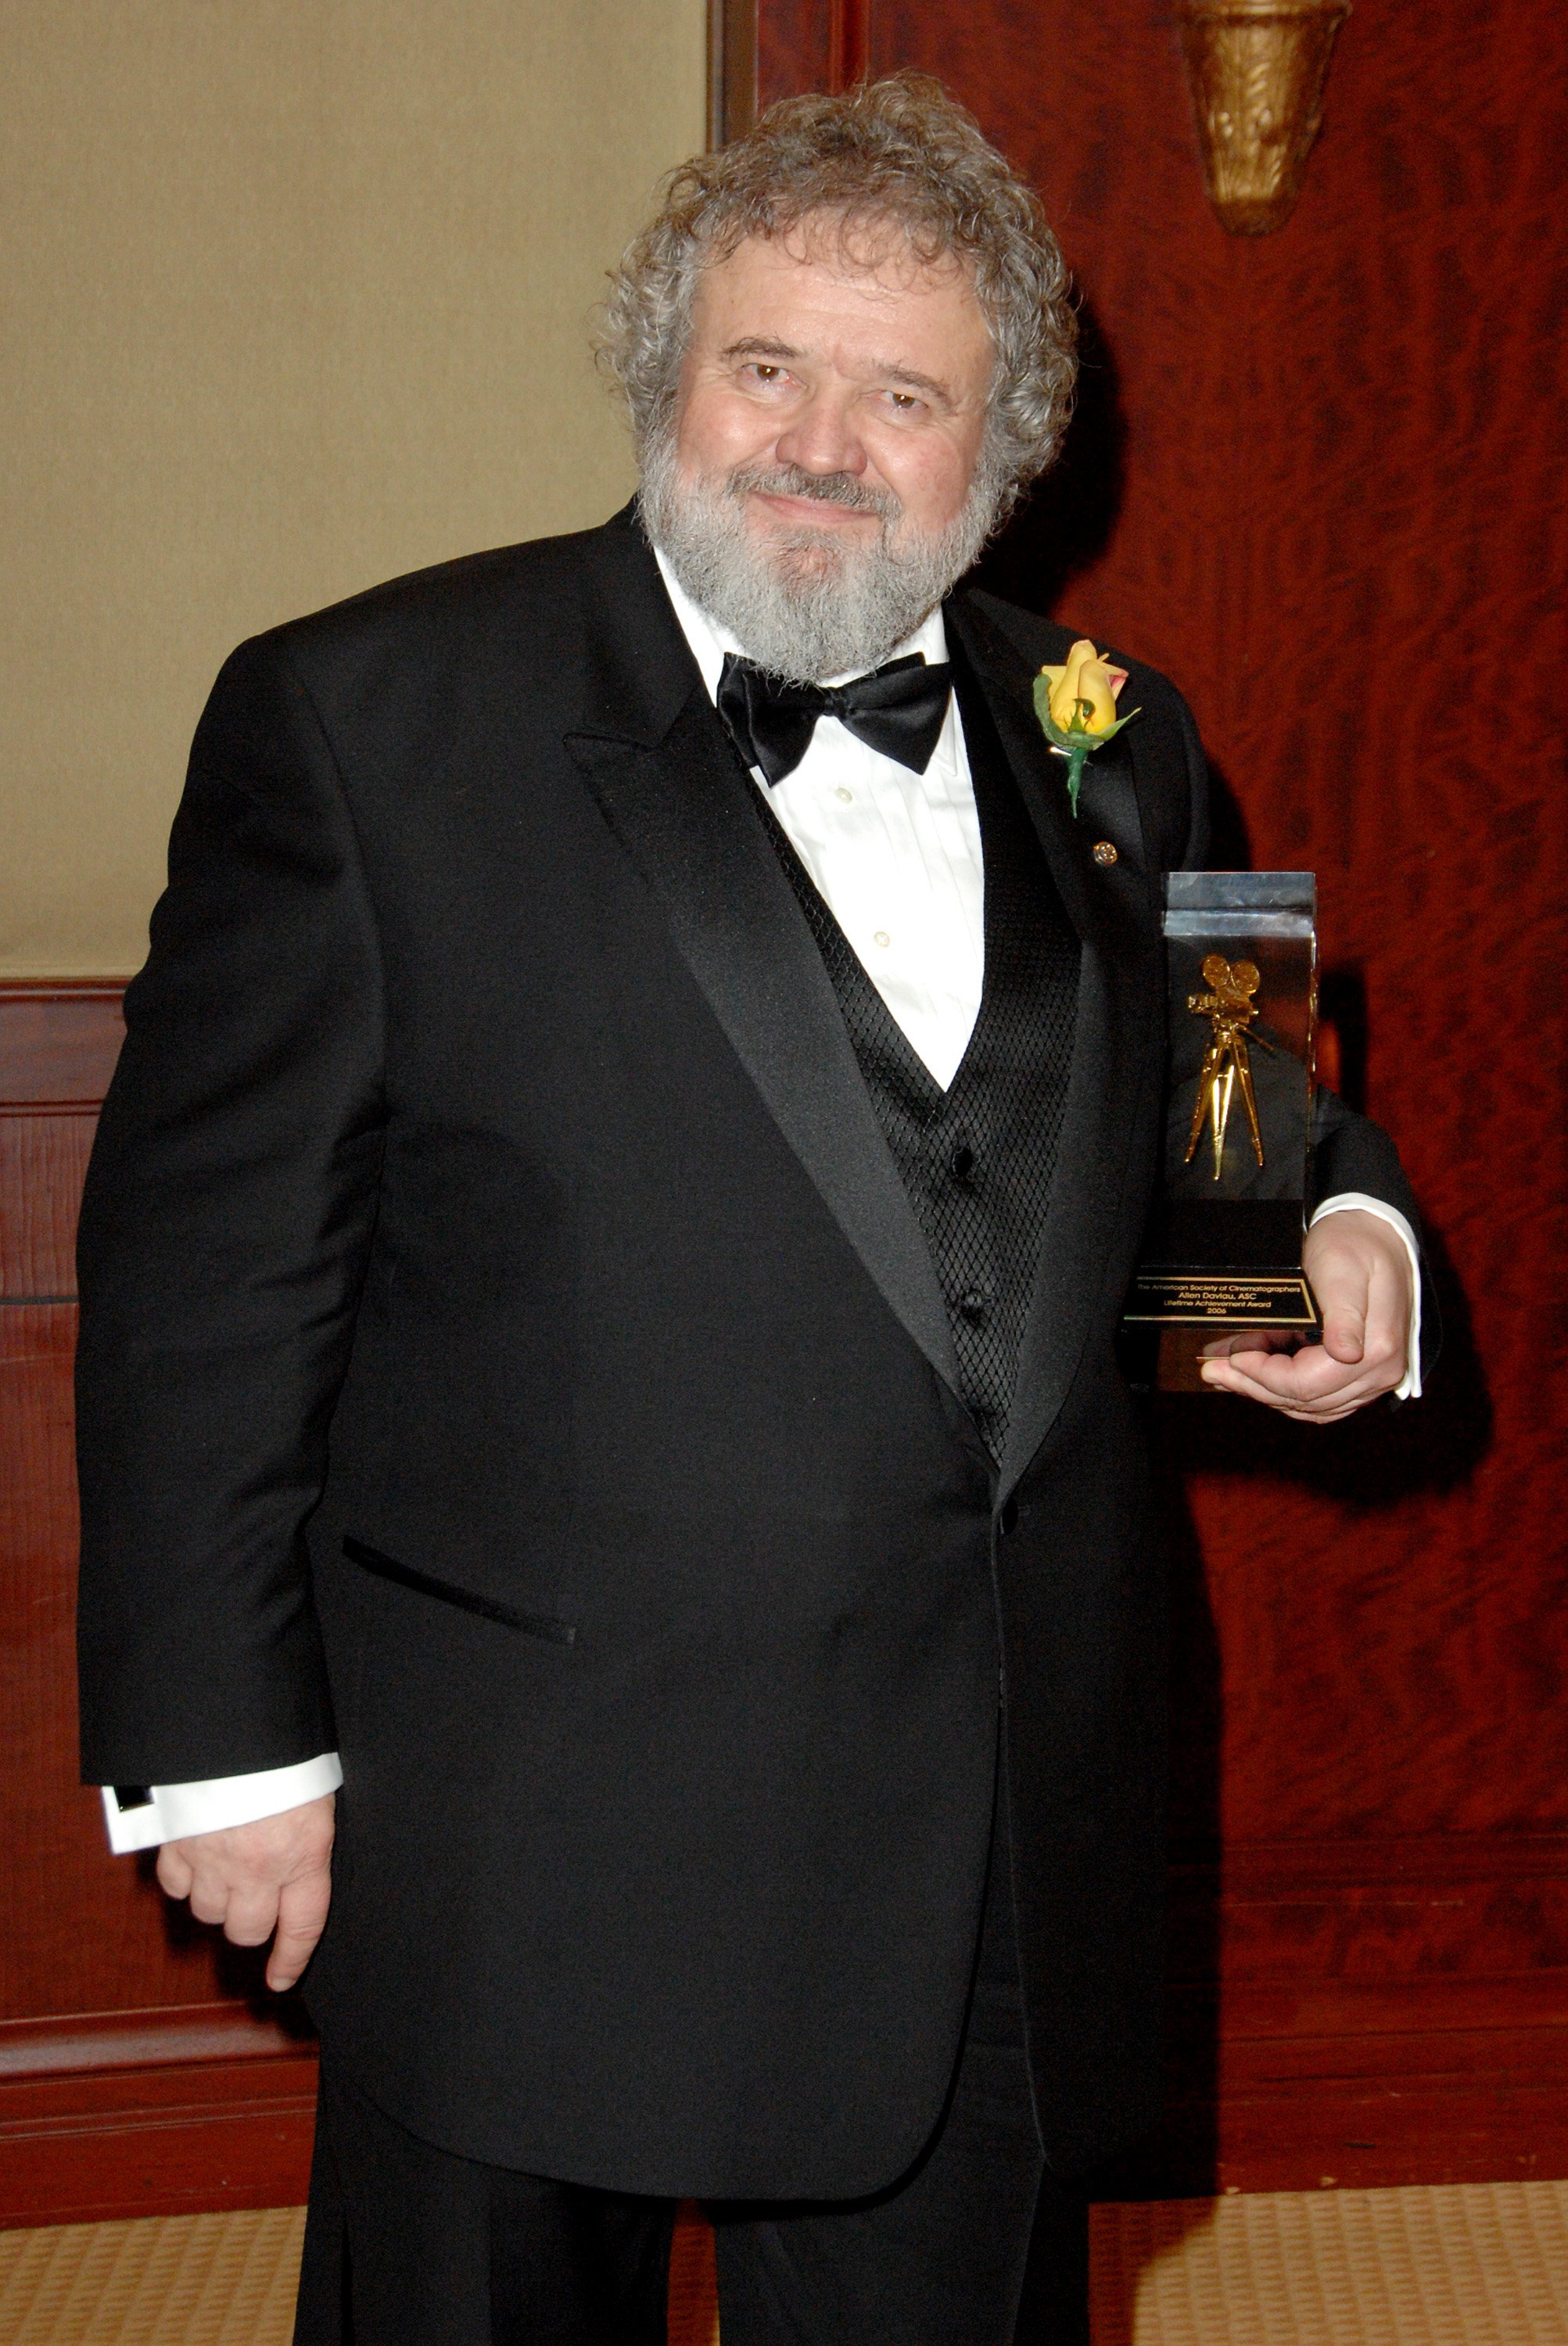 Allen Daviau during 21st Annual American Society Of Cinematographers Awards in February 2007, in Century City, California. | Source: Getty Images.